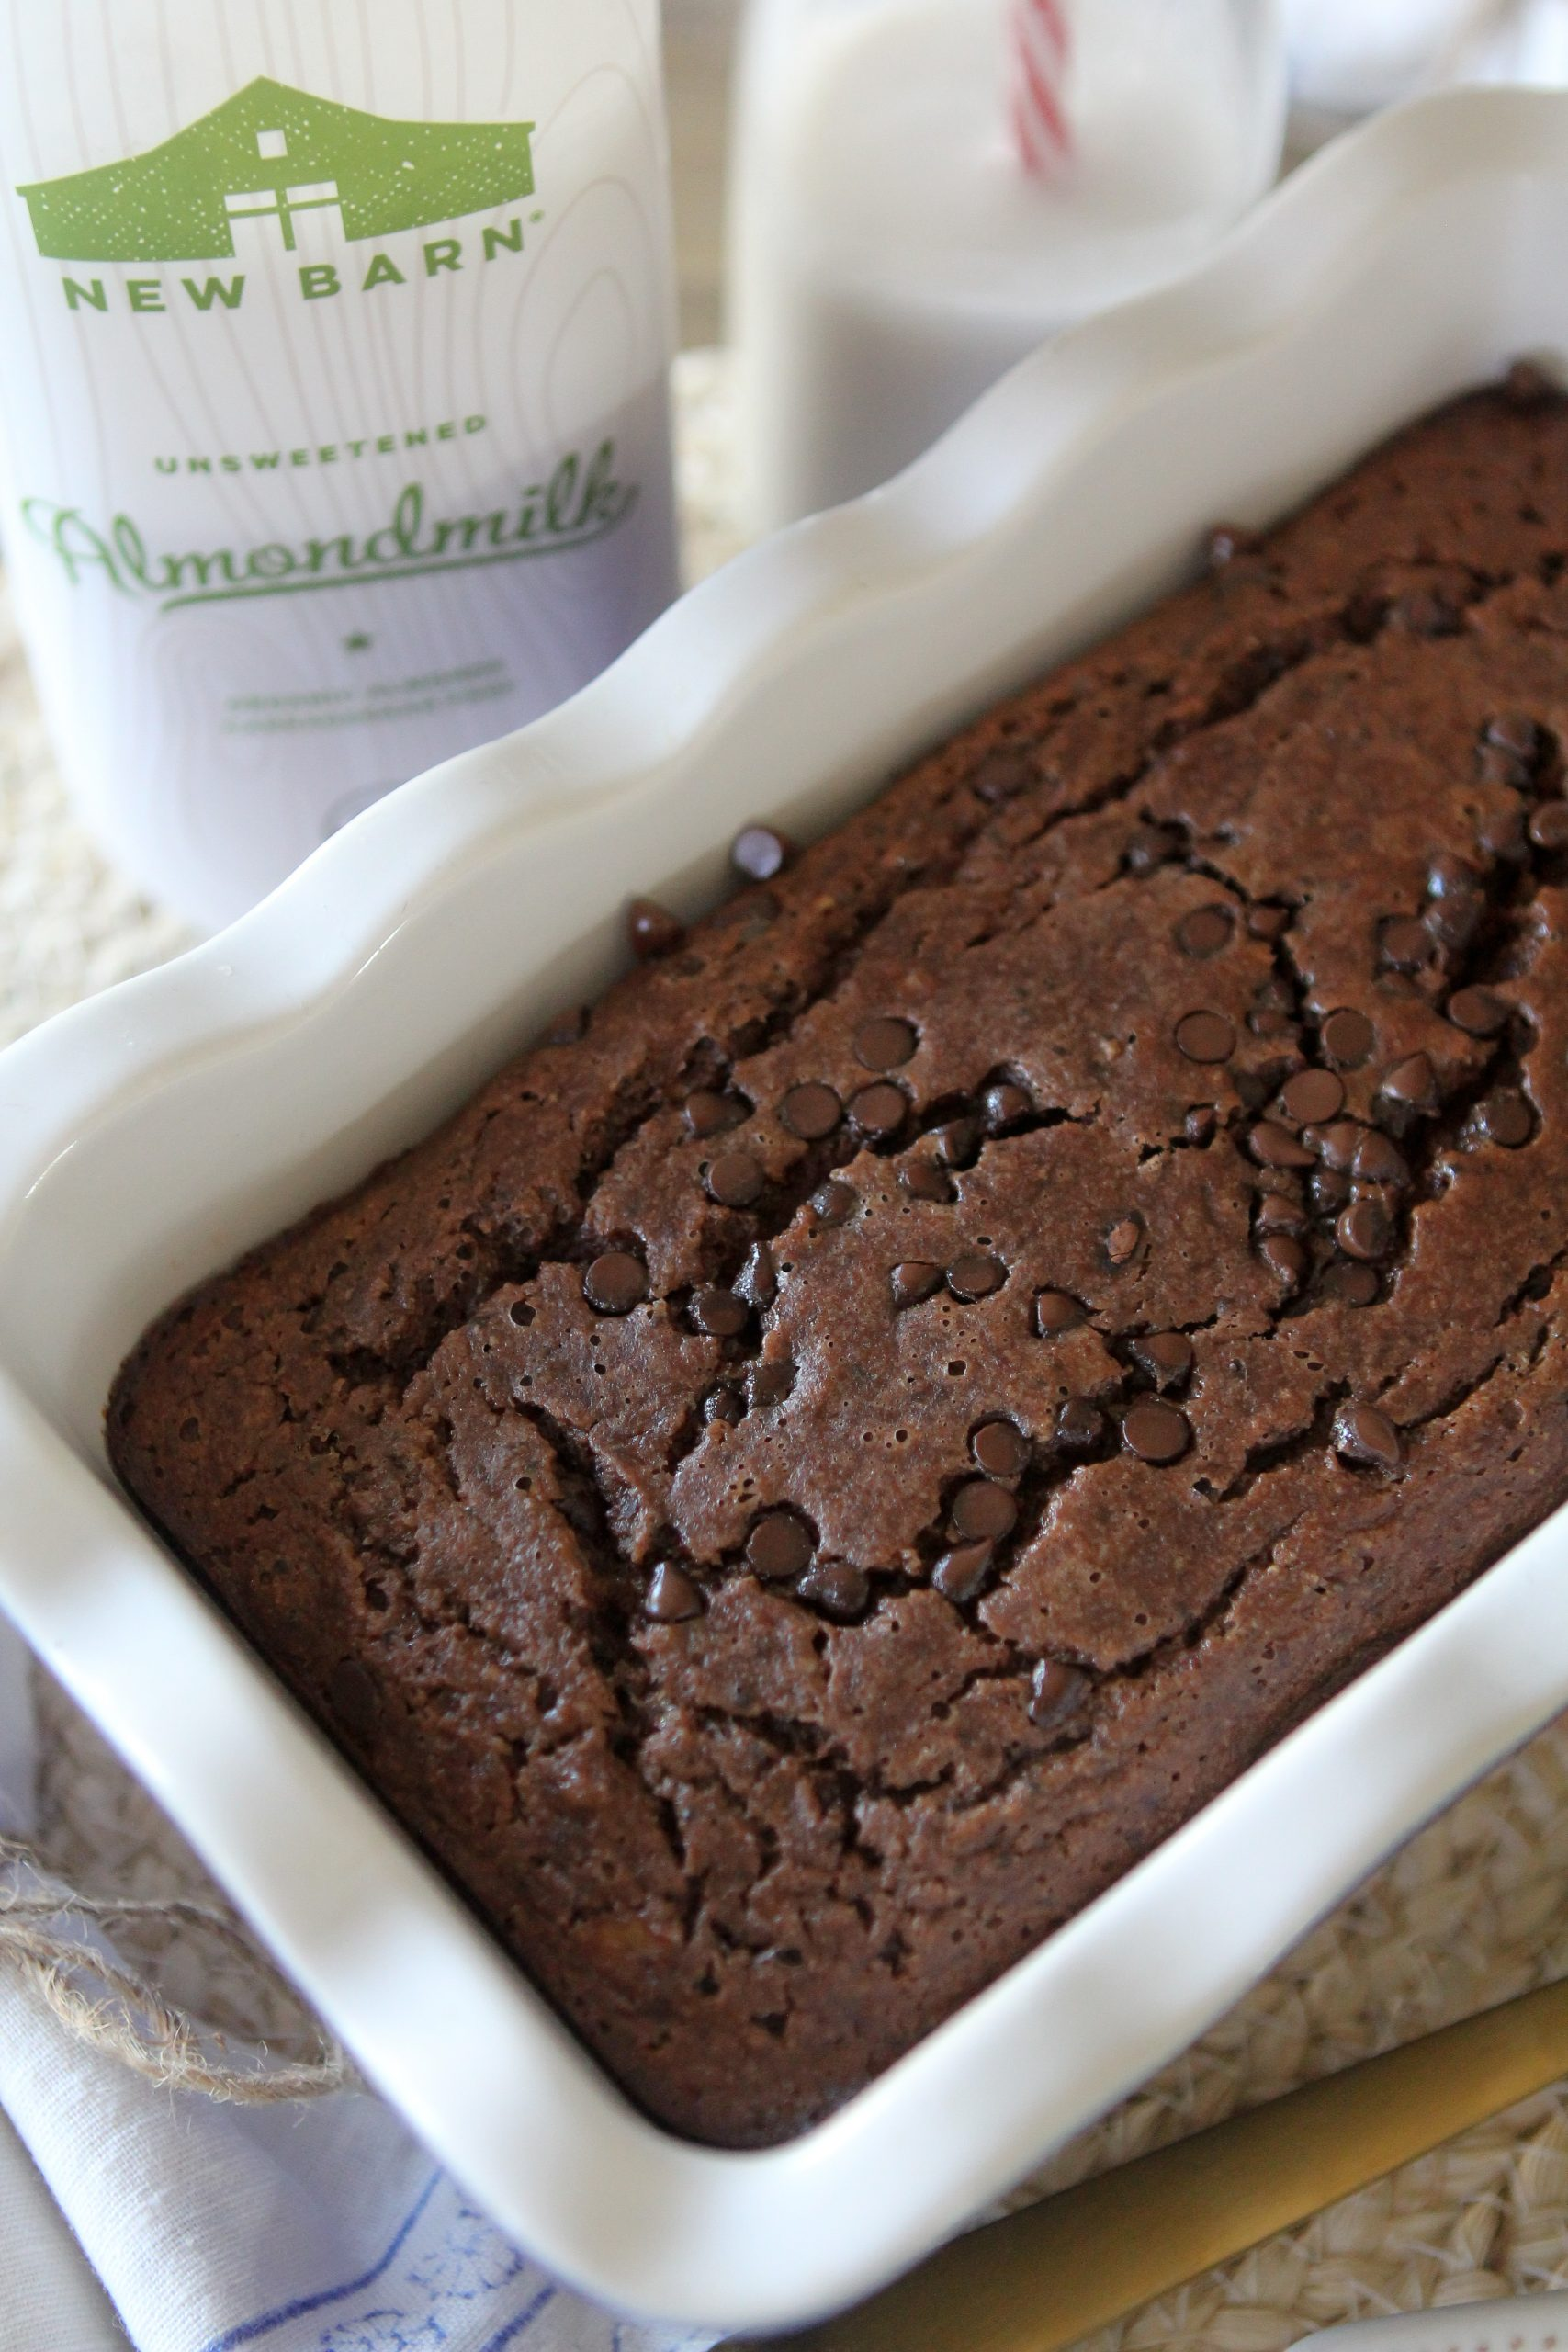 A grain-free Paleo Chocolate Banana Bread from the Whole Smiths brought to you by New Barn Organic Almondmilk. This recipe is sure to become a family favorite around the house! Gluten-Free.